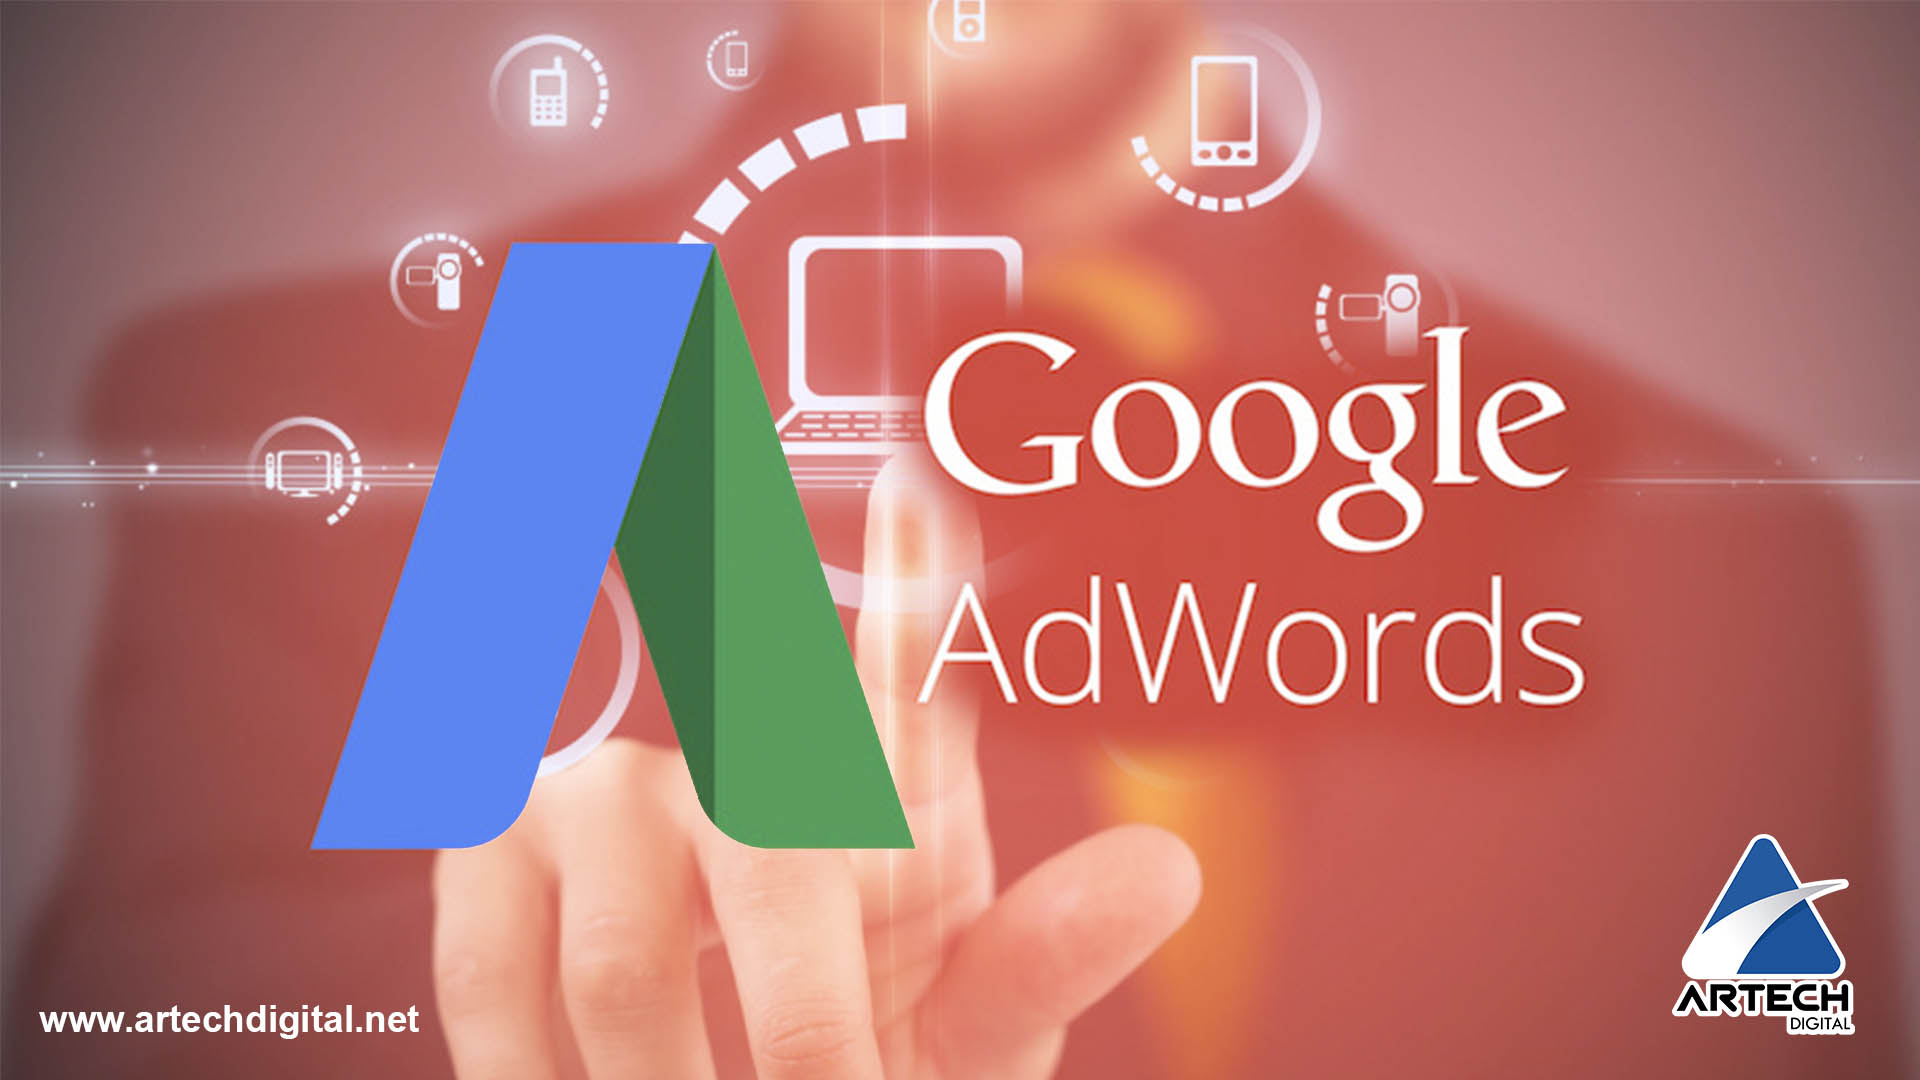 Ventajas de Google Adwords - Artech Digital